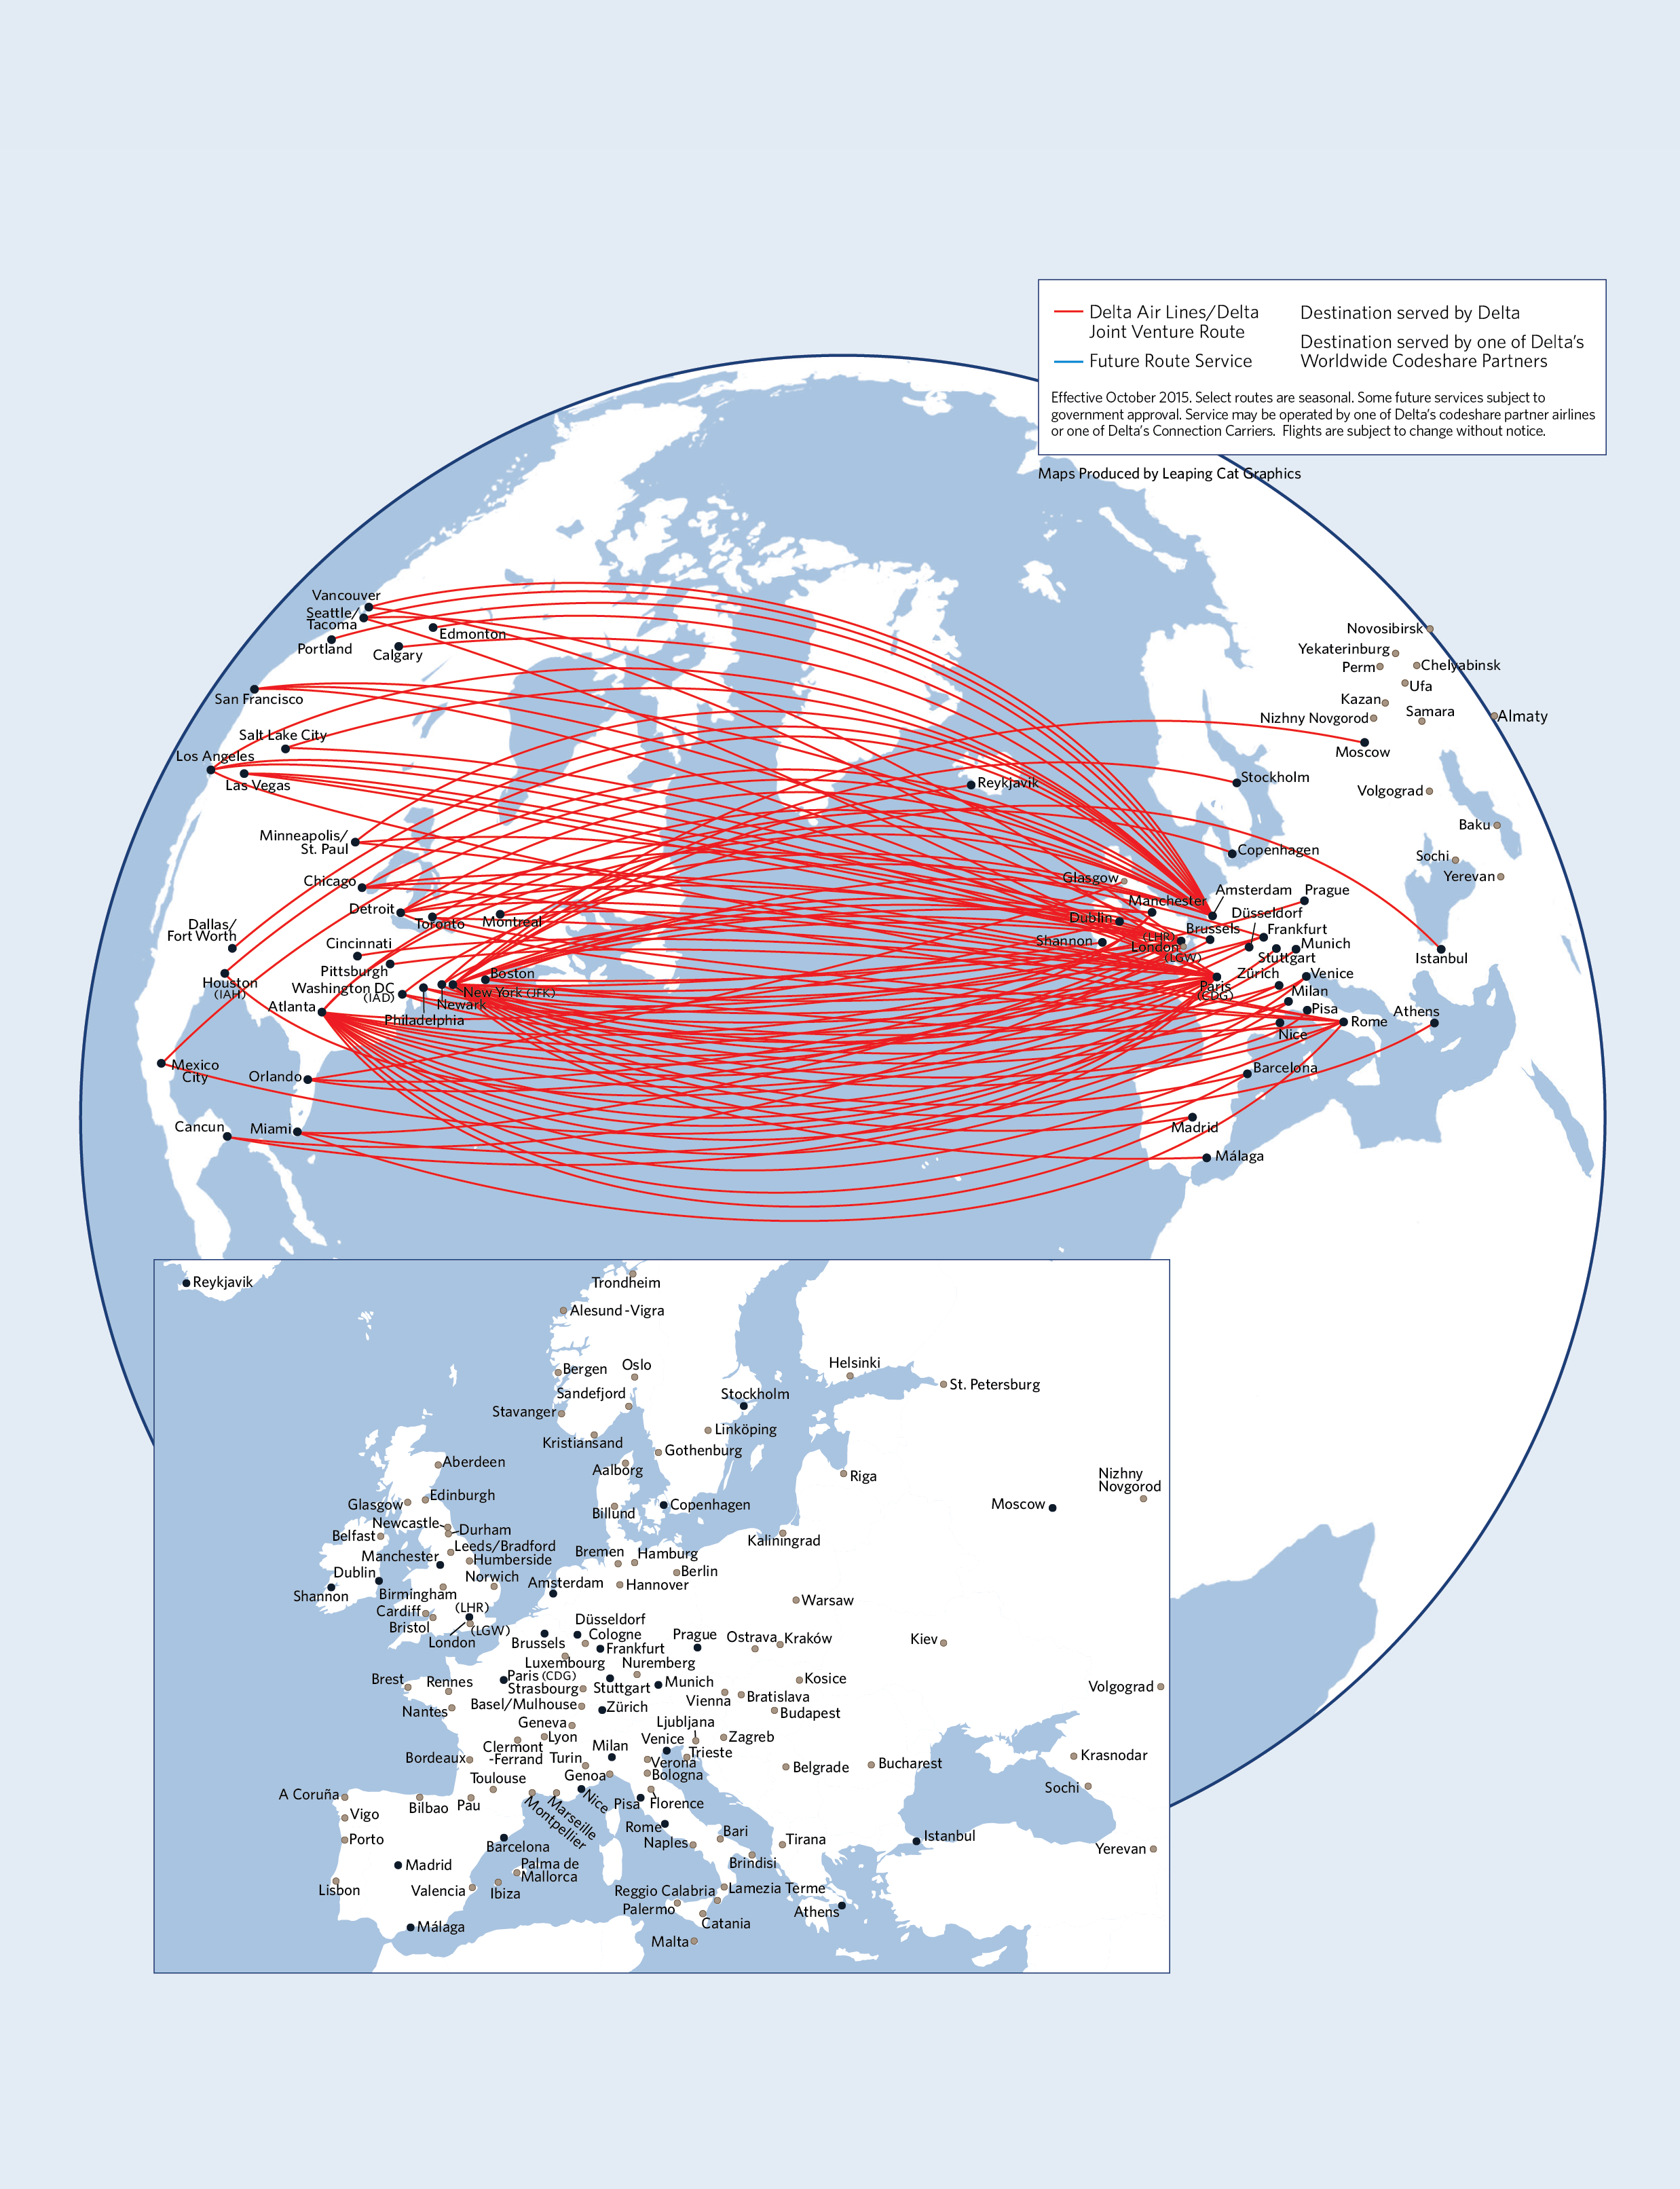 Route map between U.S., Europe | Delta News Hub